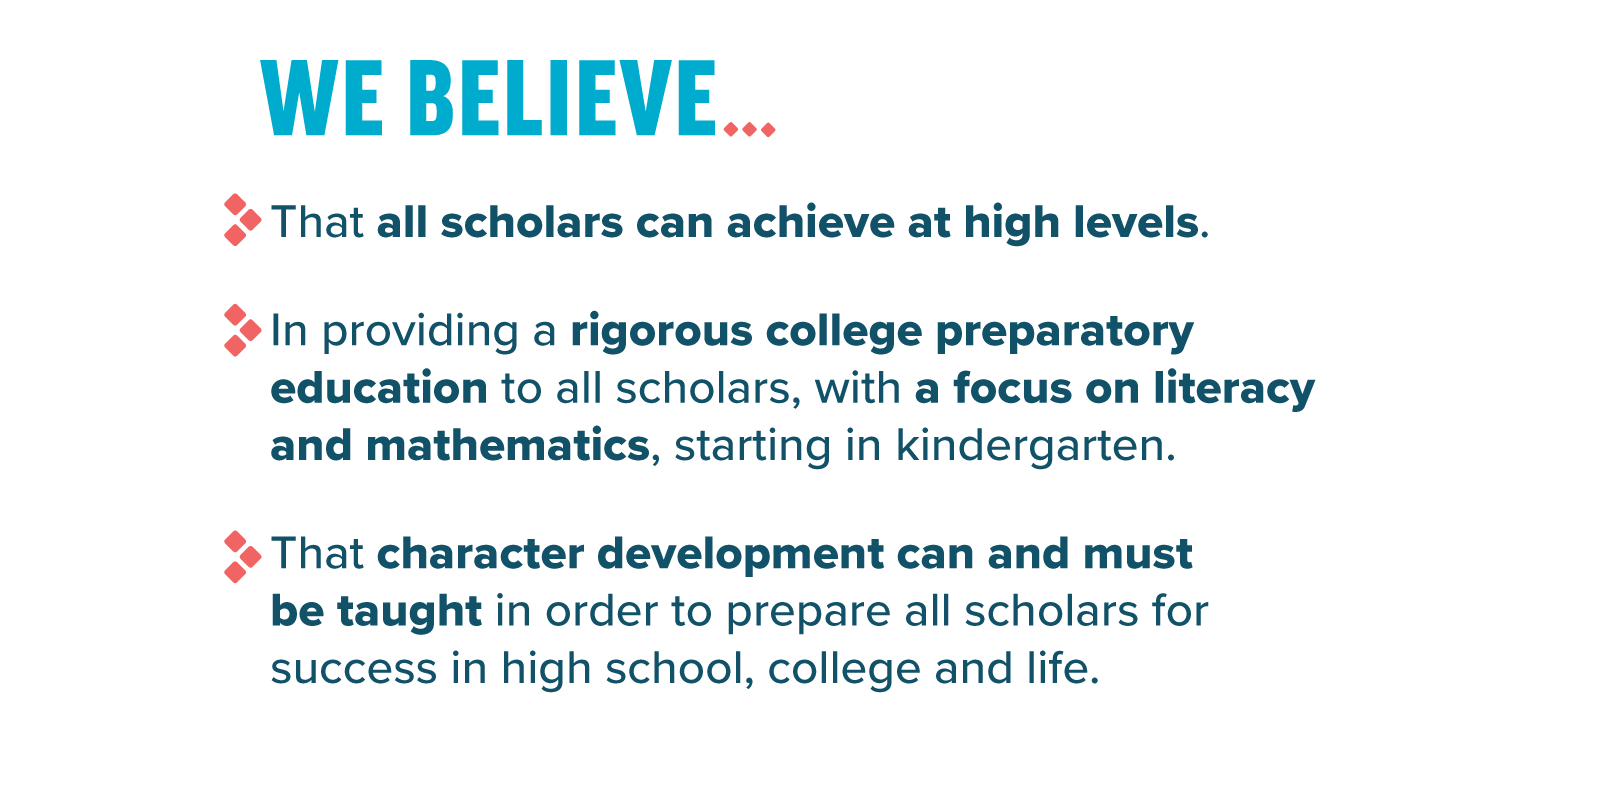 RISEPrep_materials_we-believe3.png